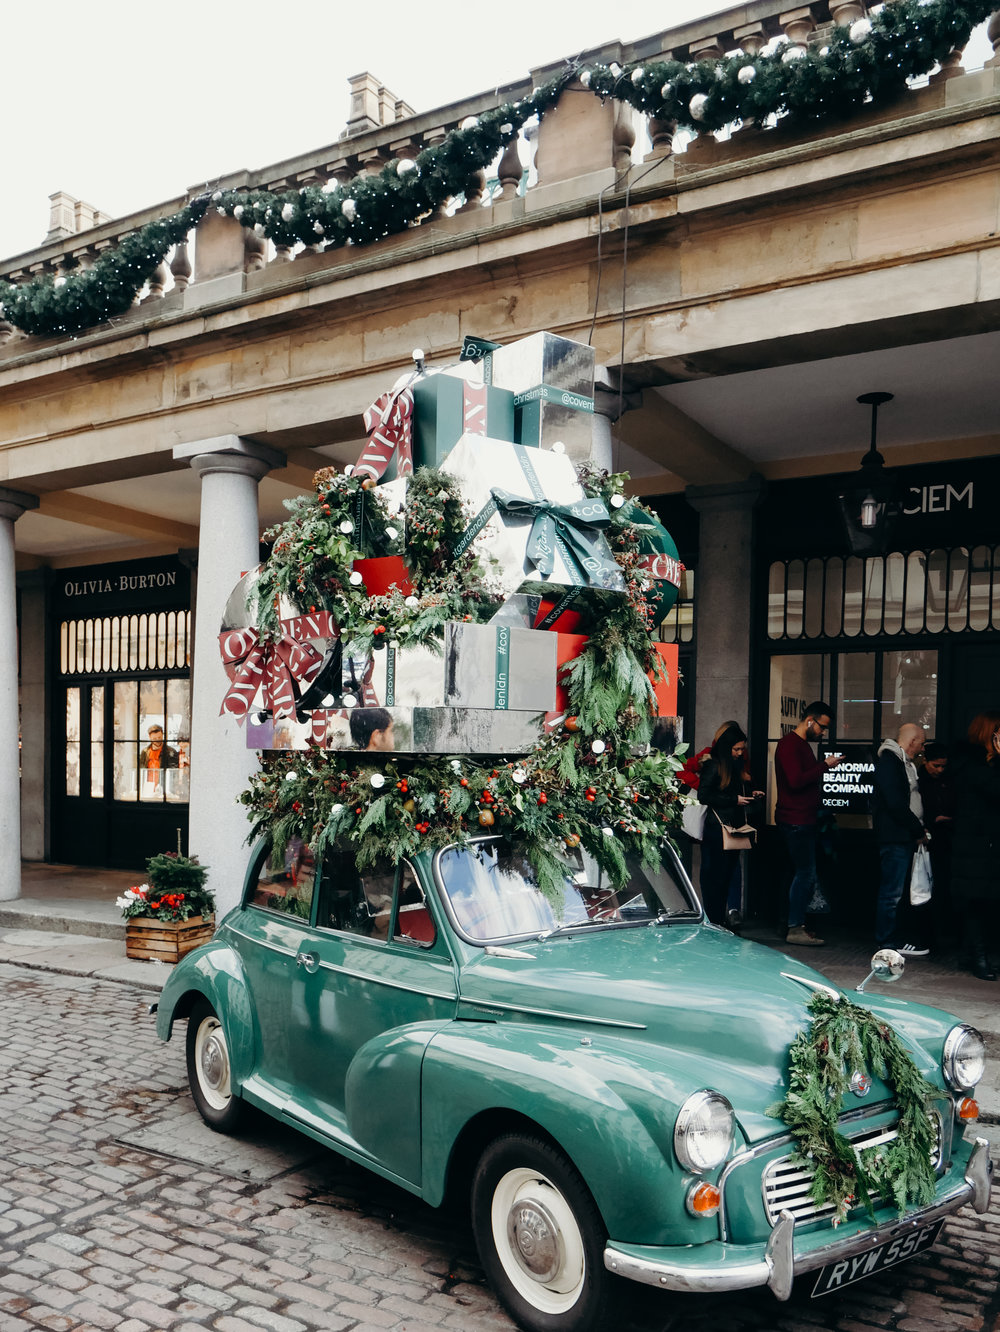 6 Things to Do in London at Christmastime - Covent Garden